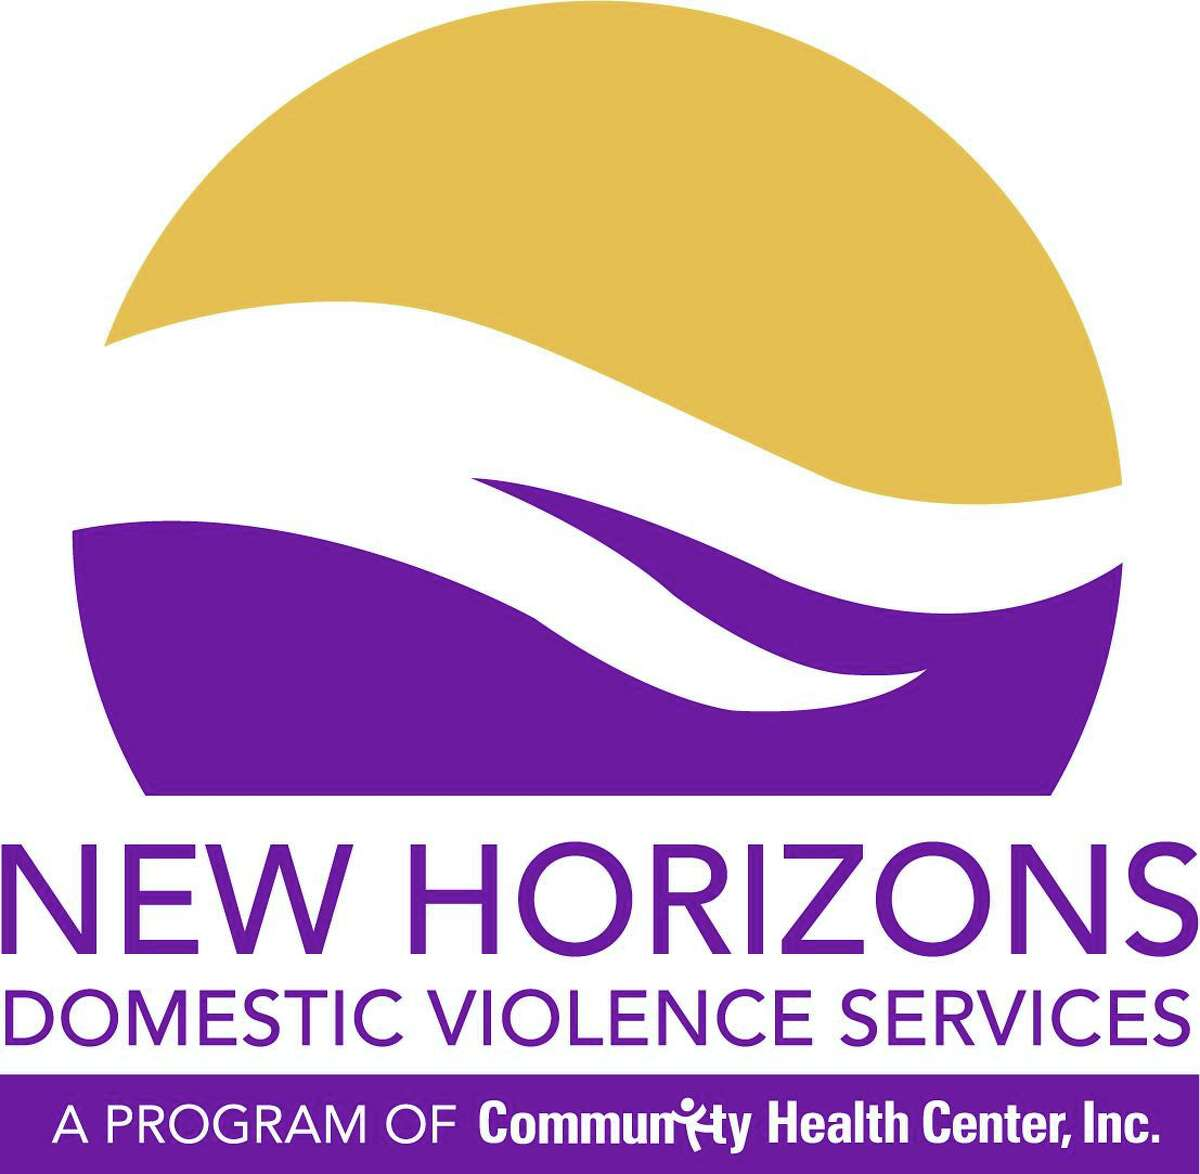 Middletown's New Horizons Domestic Violence Services has changed its logo to purple and yellow colors.